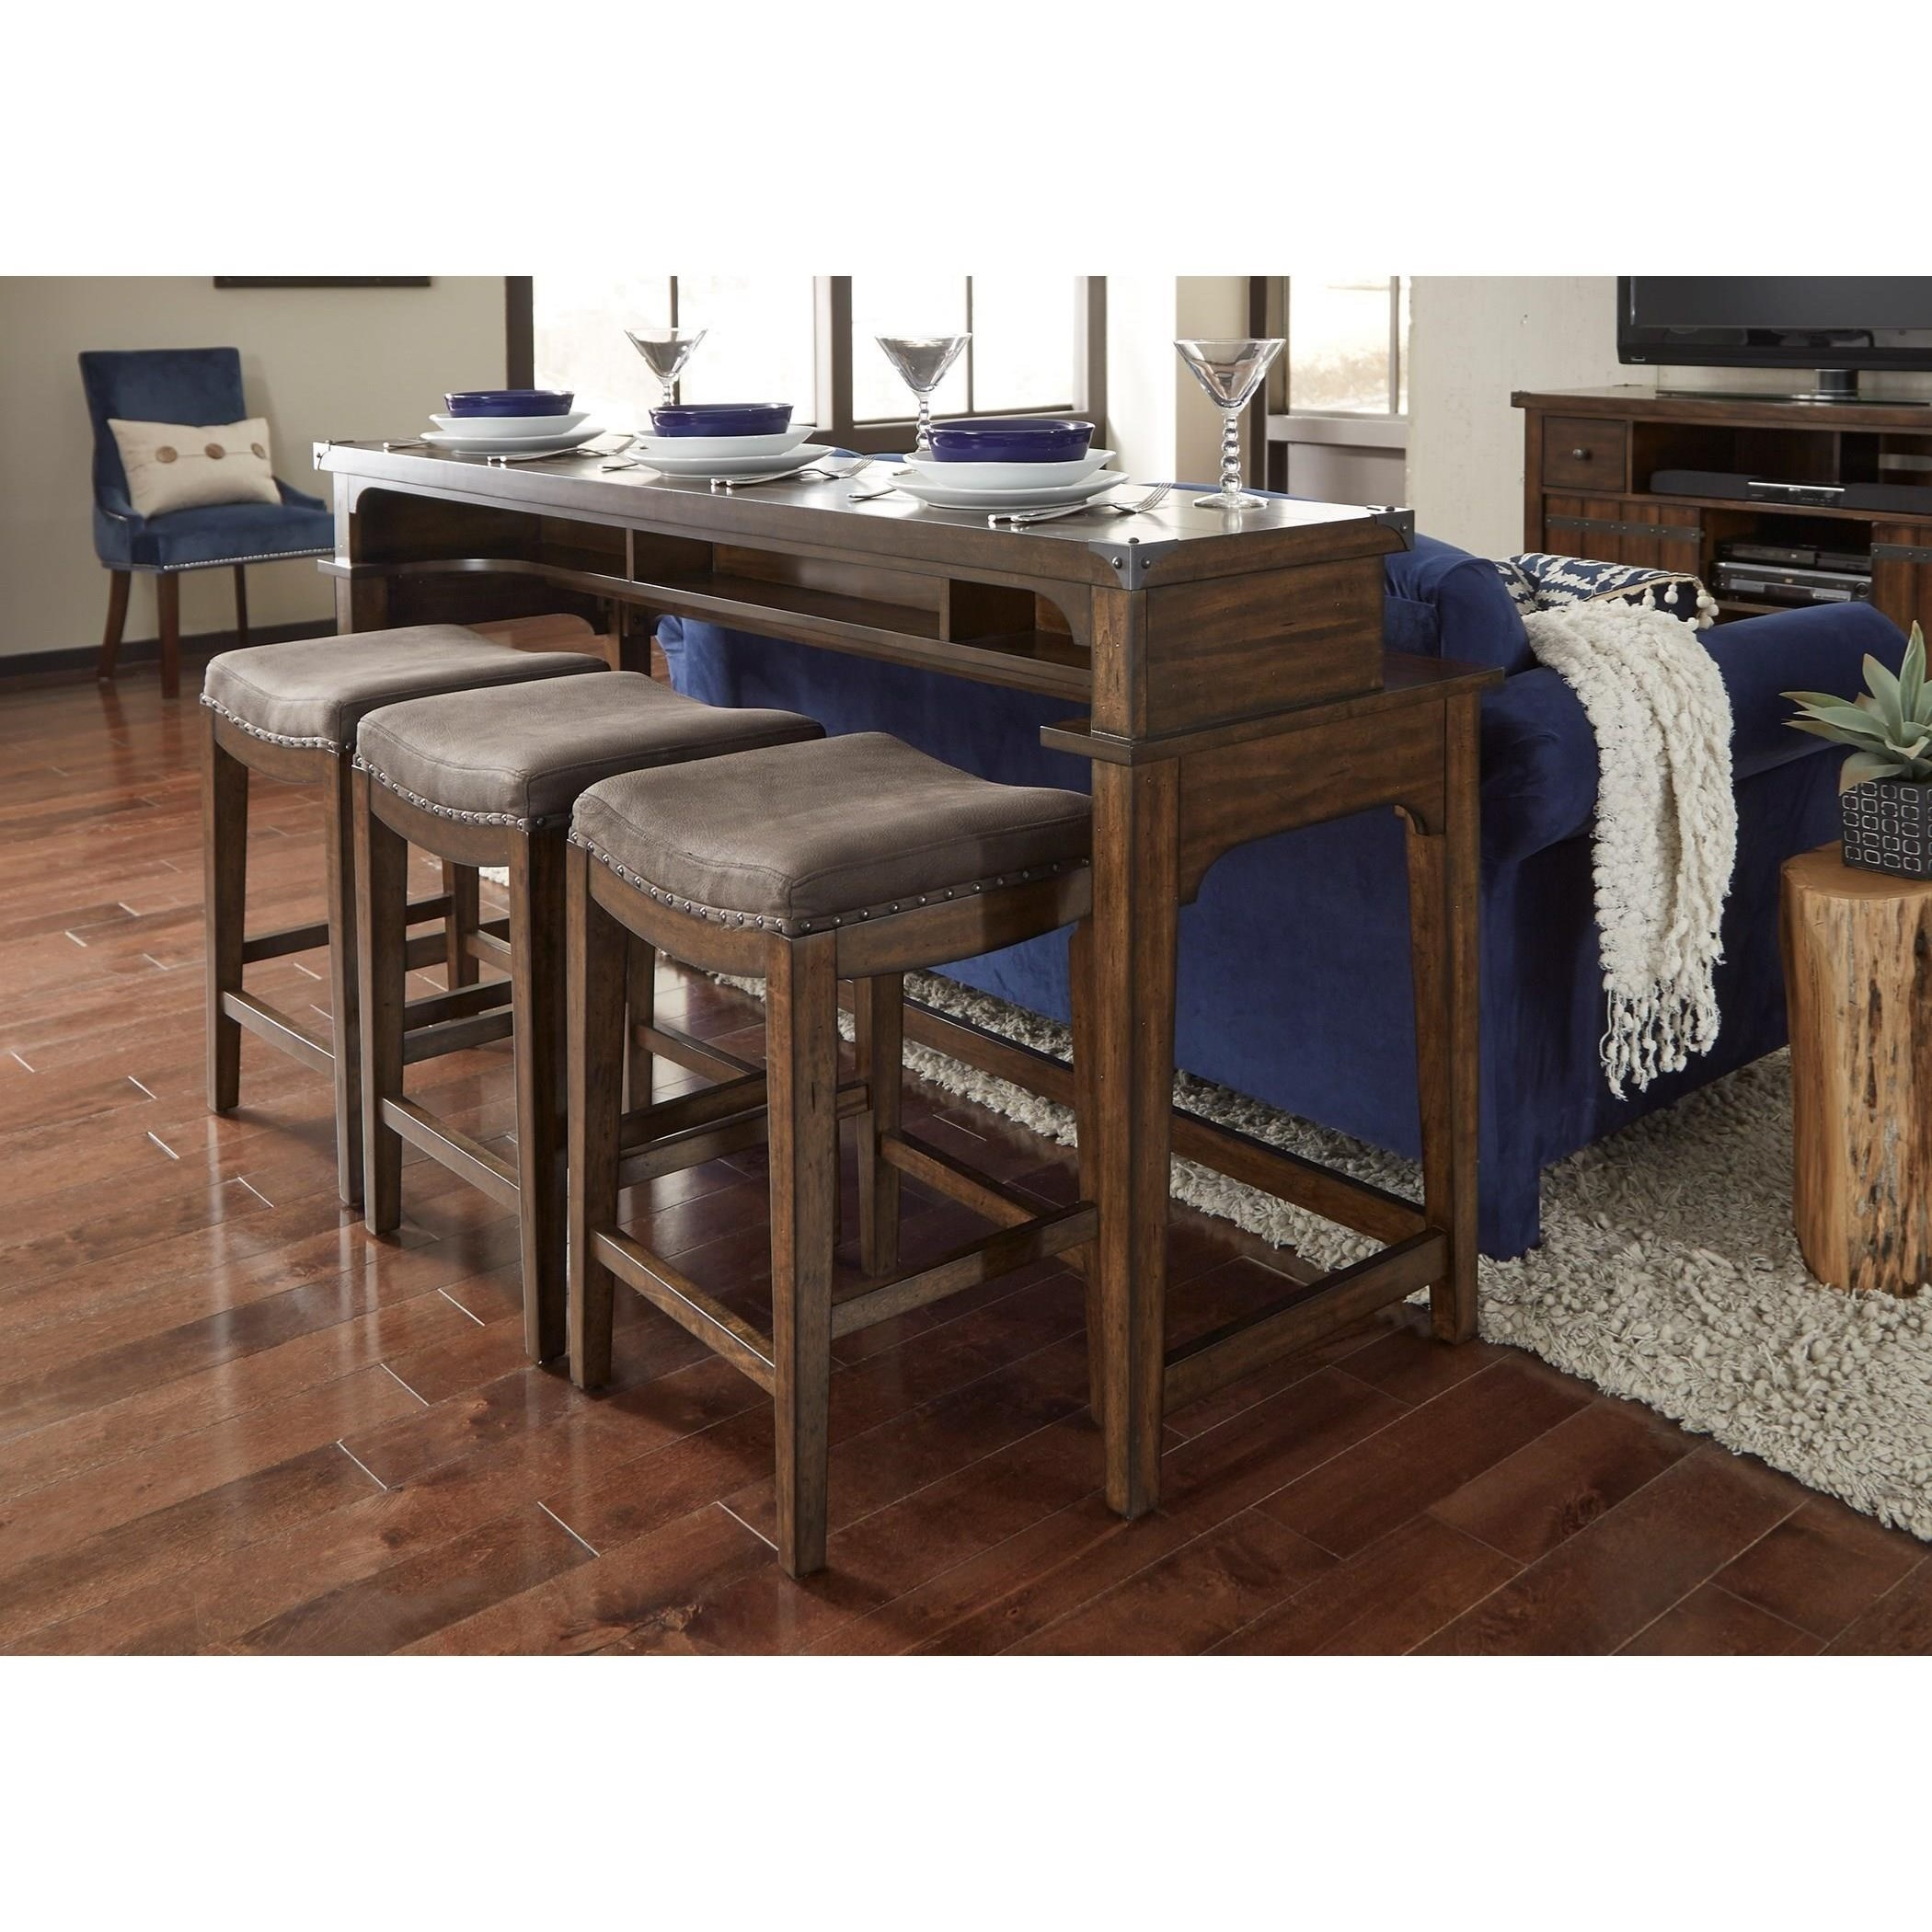 Counter Height Sofa Table and Stool Set